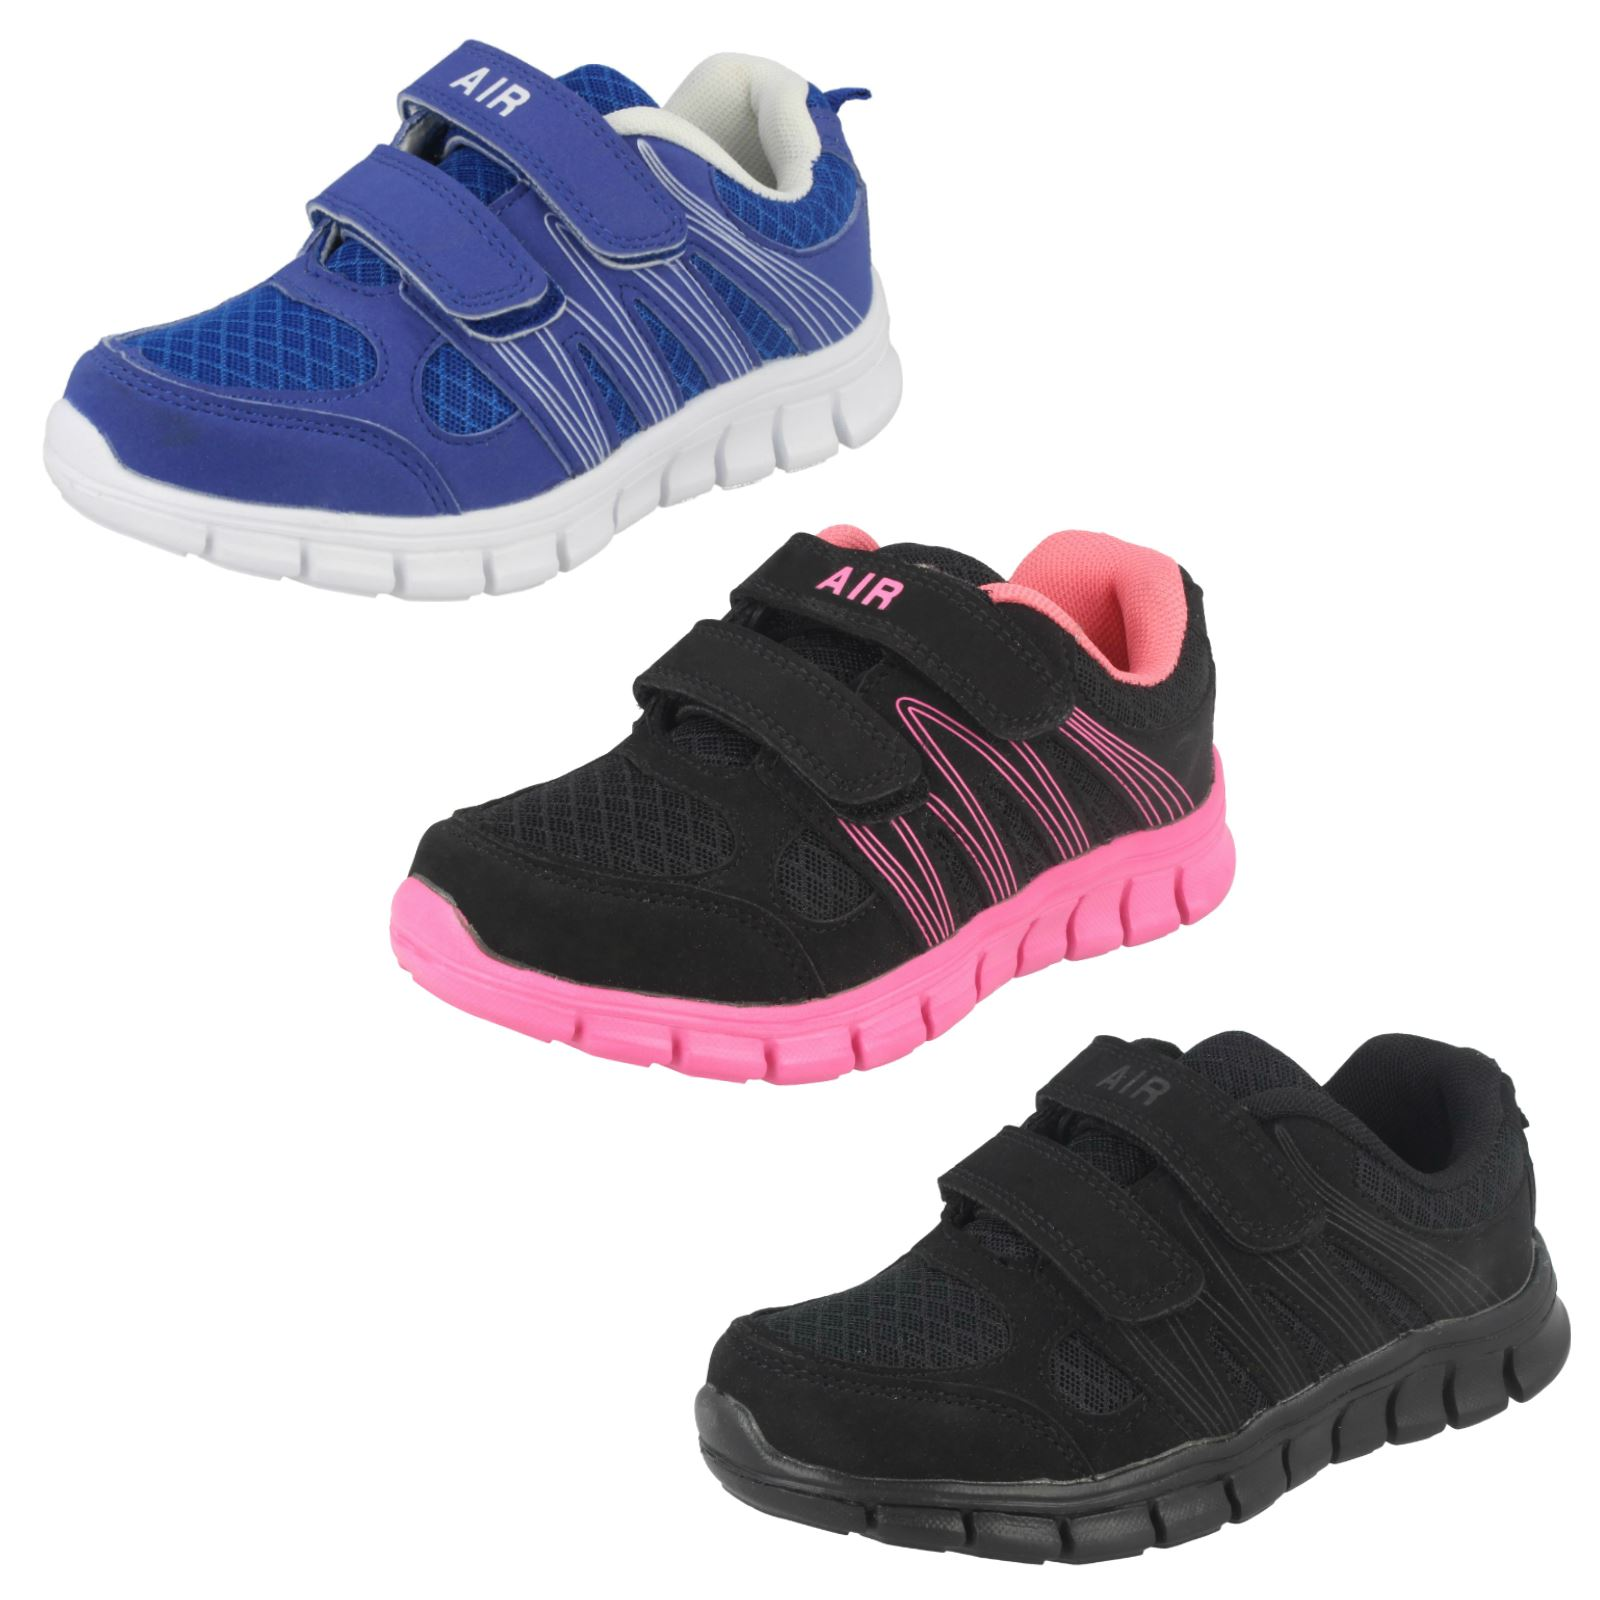 6e2170fb34cf Childrens Boys Girls Air Tech Textile Hook   Loop Fastening Trainers -   Sprint